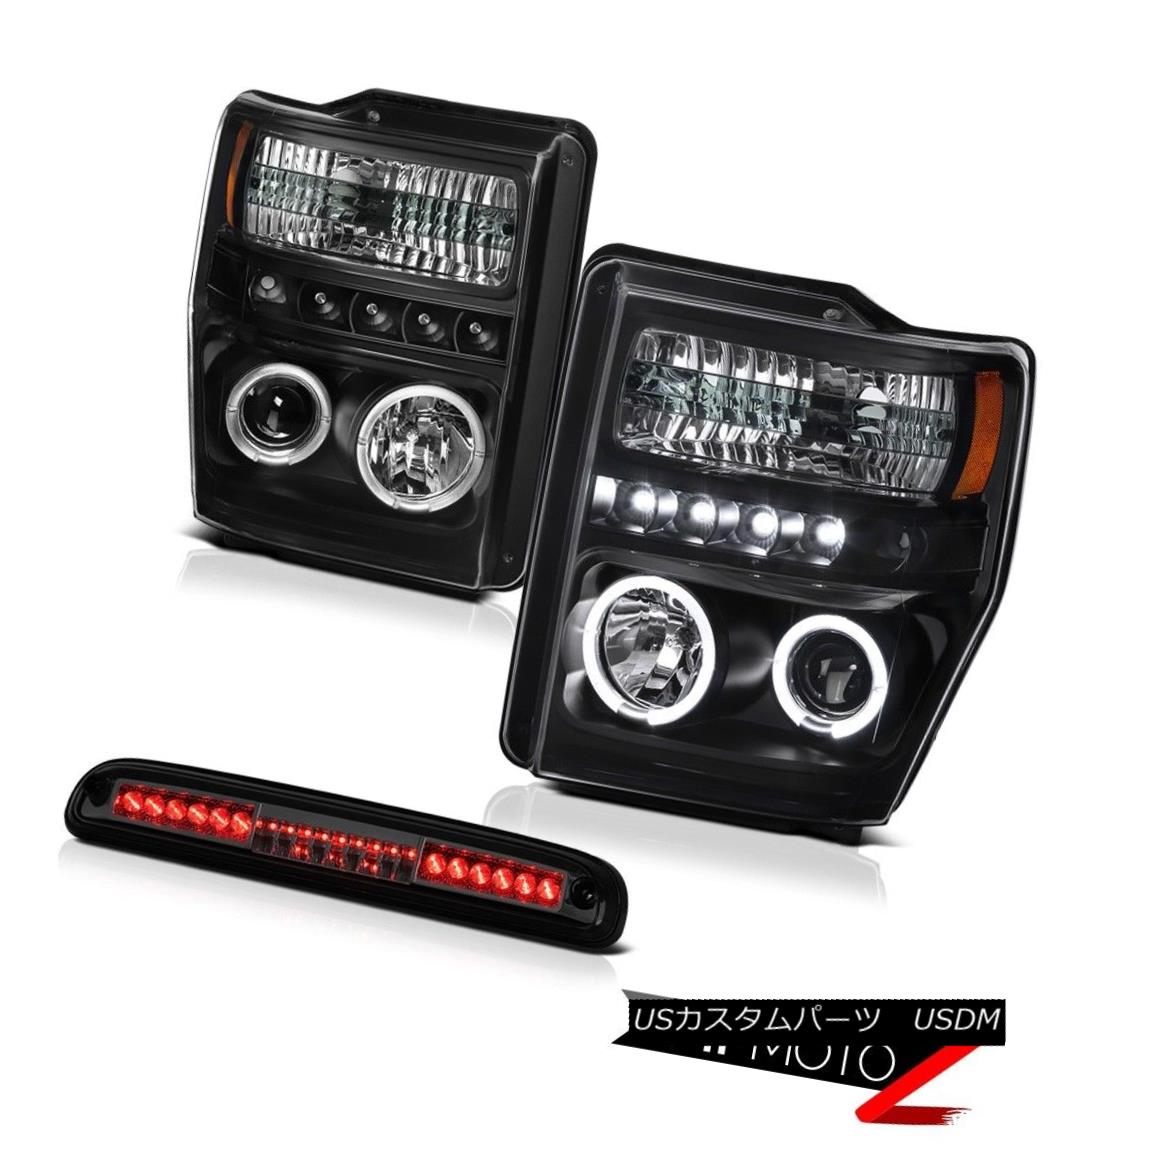 ヘッドライト 2008-2010 F250 F350 F450 FLariat Halo Headlight Smoke Third Brake LED Tail Light 2008-2010 F250 F350 F450 FLariat HaloヘッドライトスモークサードブレーキLEDテールライト